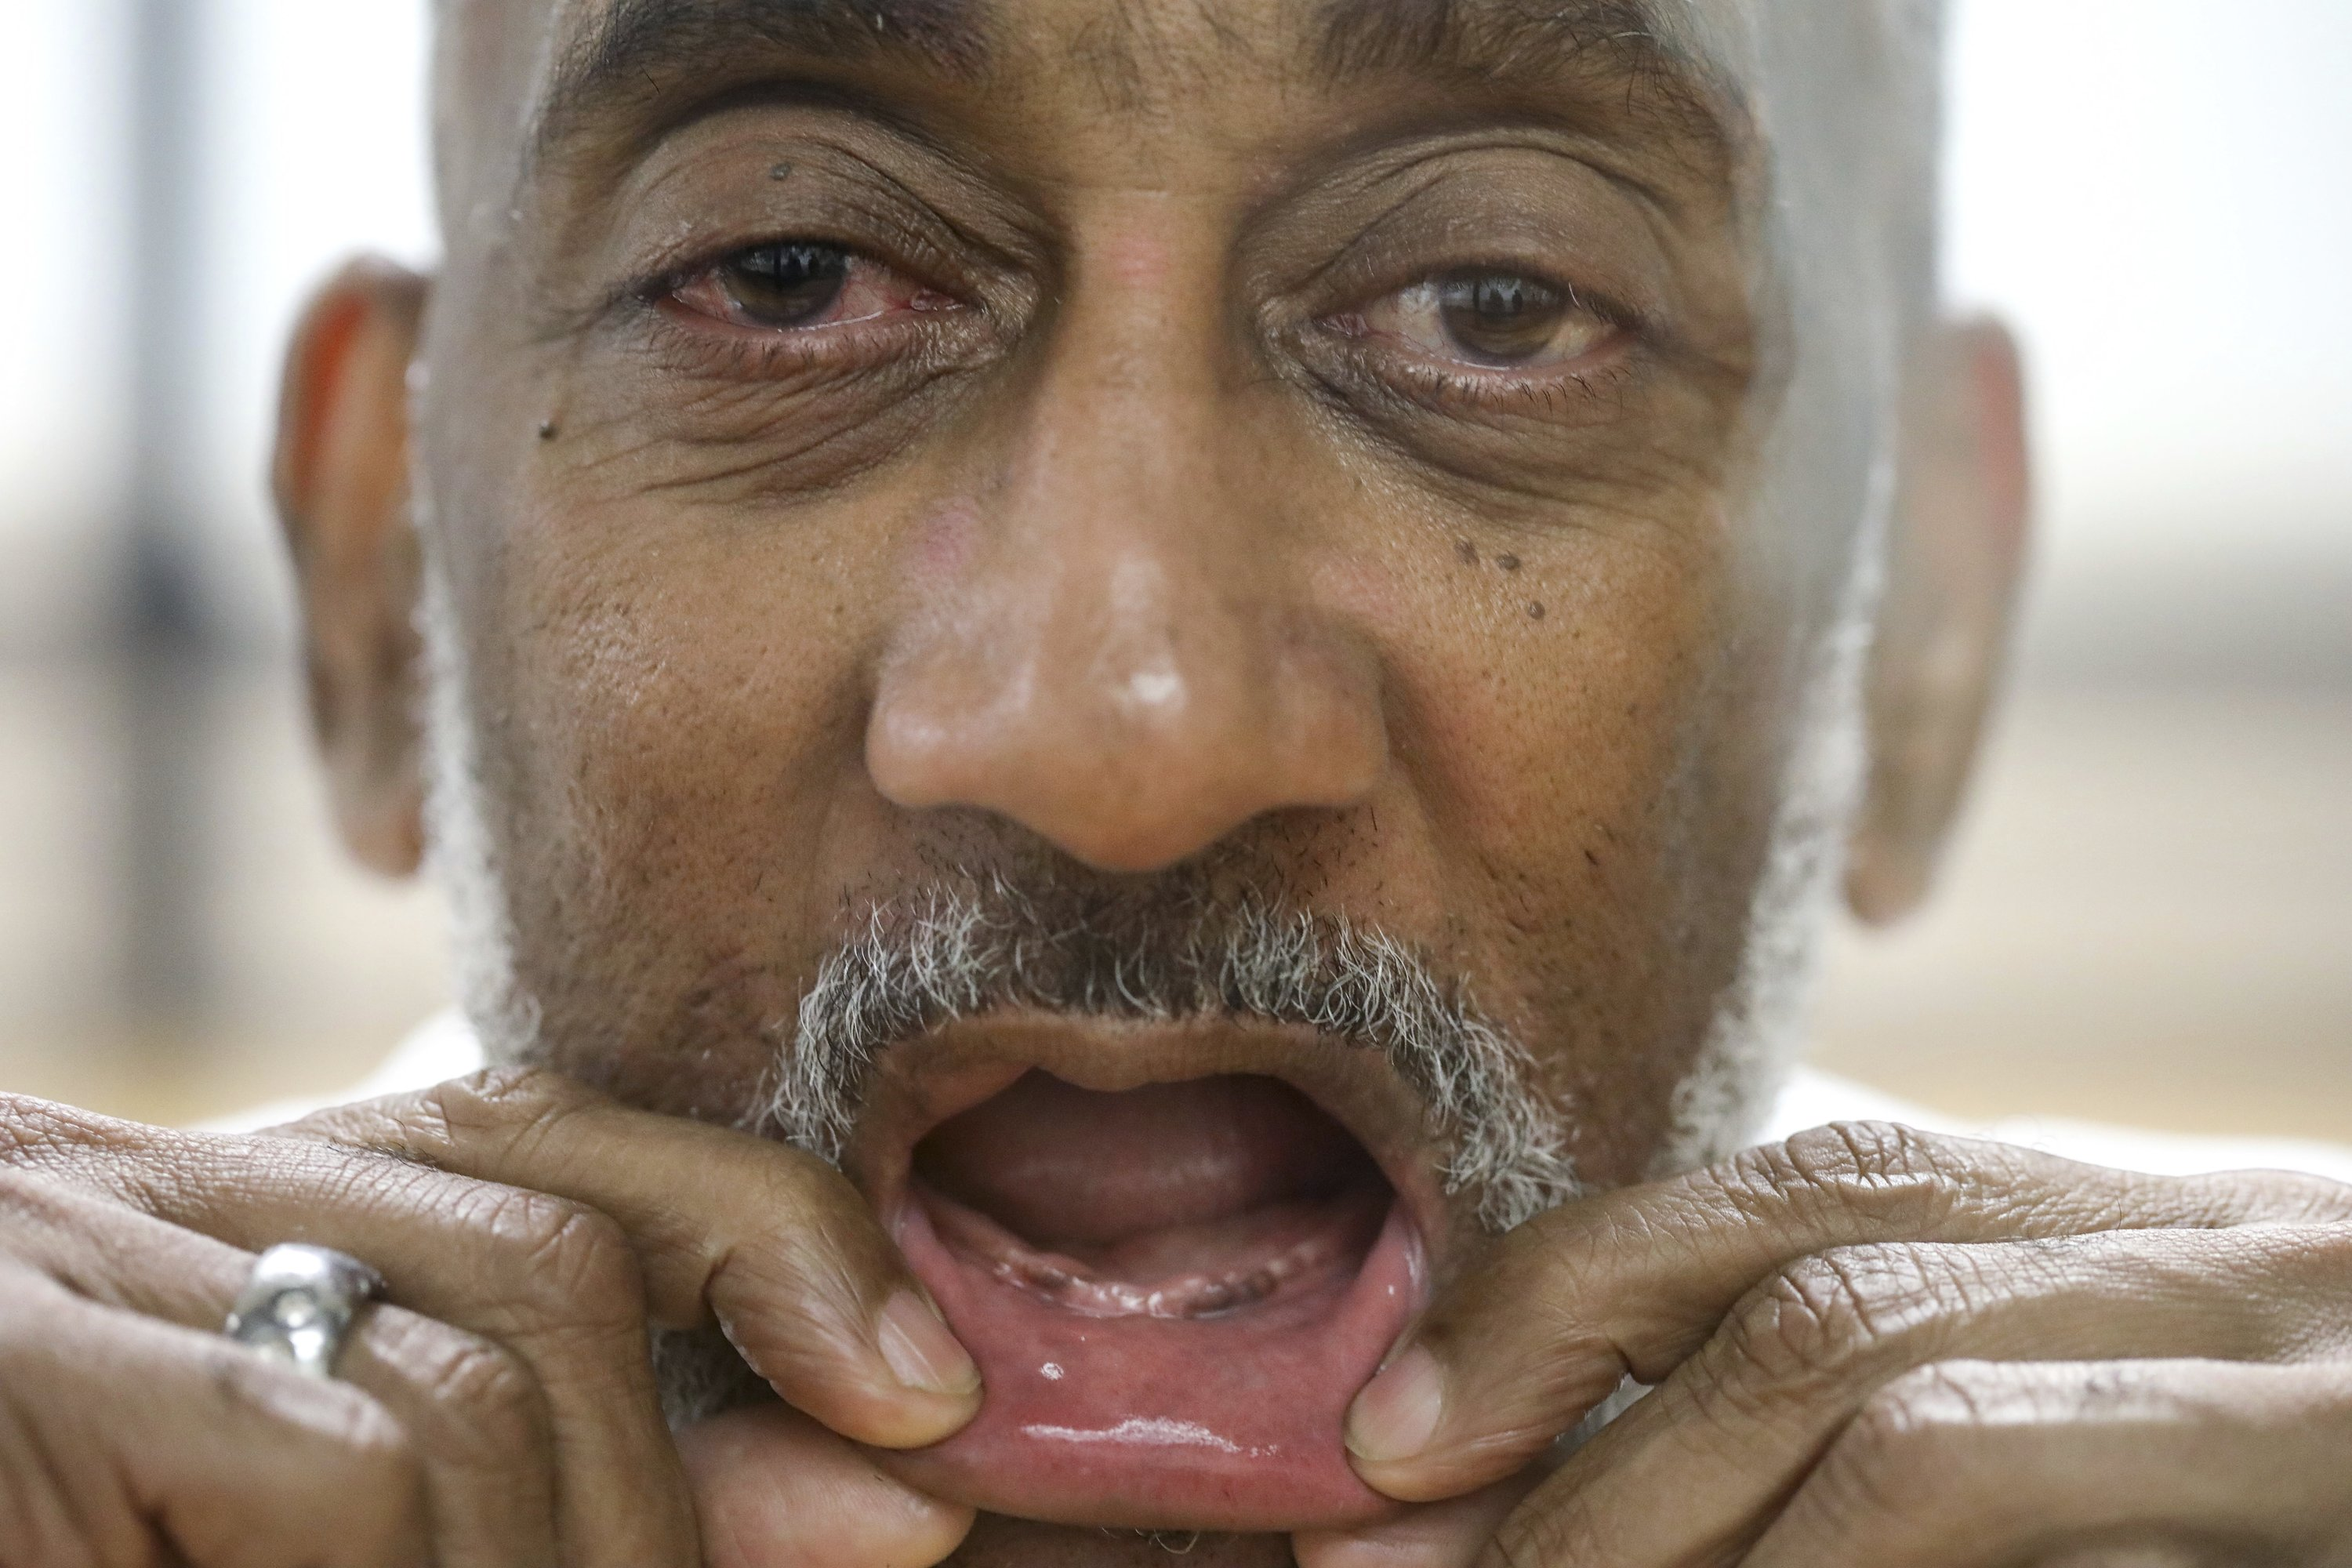 Texas prisons often deny dentures to inmates with no teeth